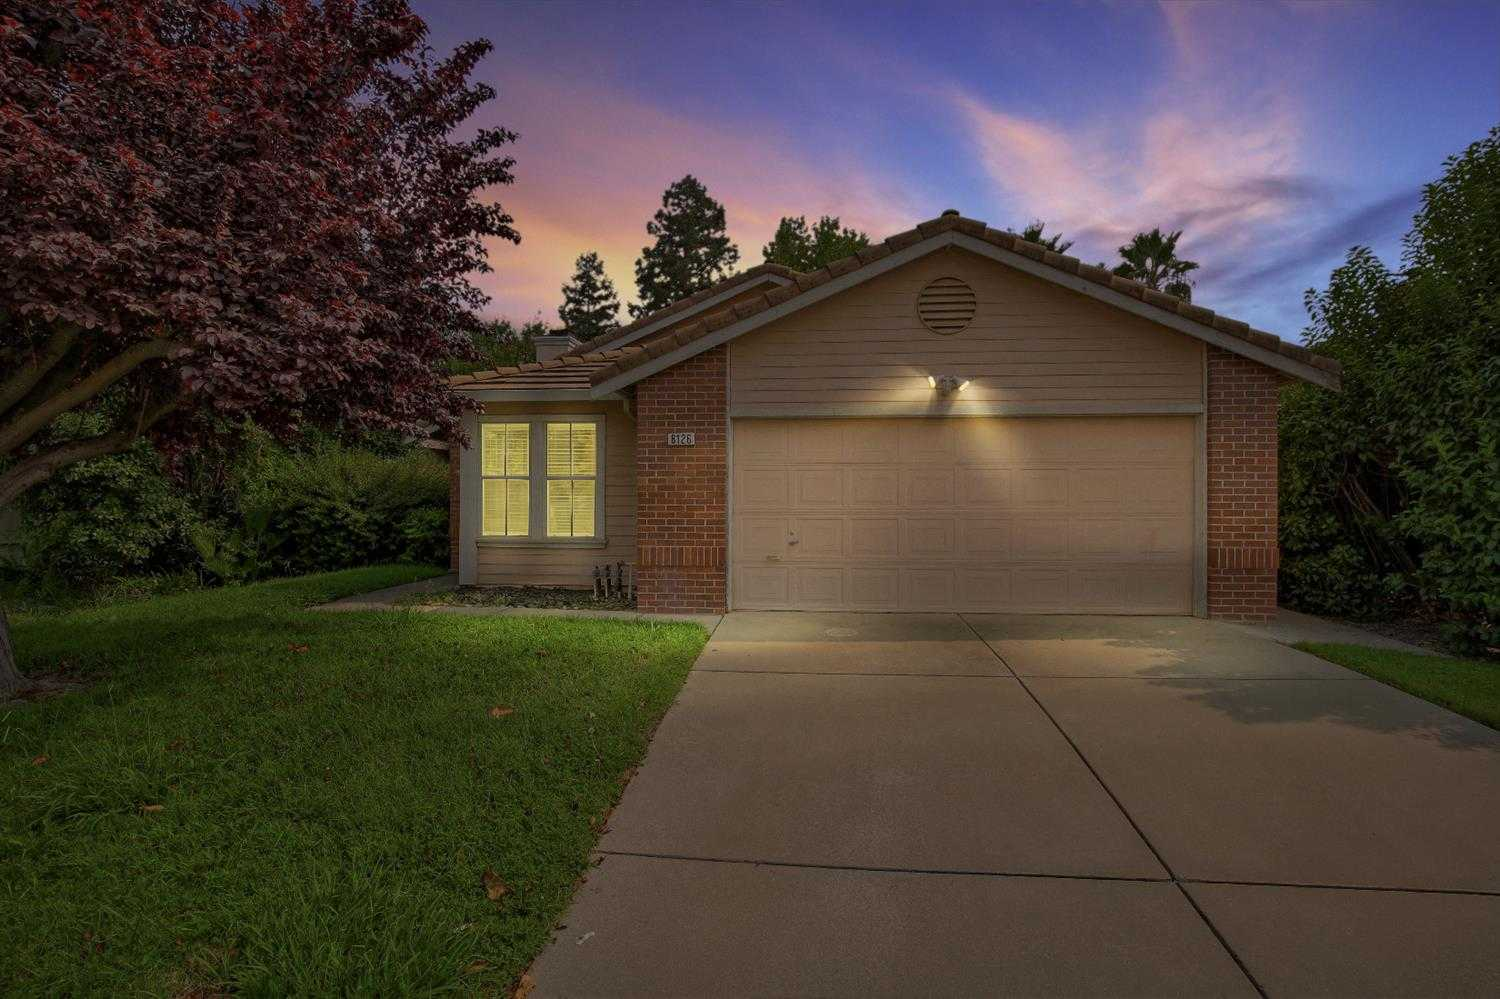 $375,000 - 3Br/2Ba -  for Sale in Citrus Heights